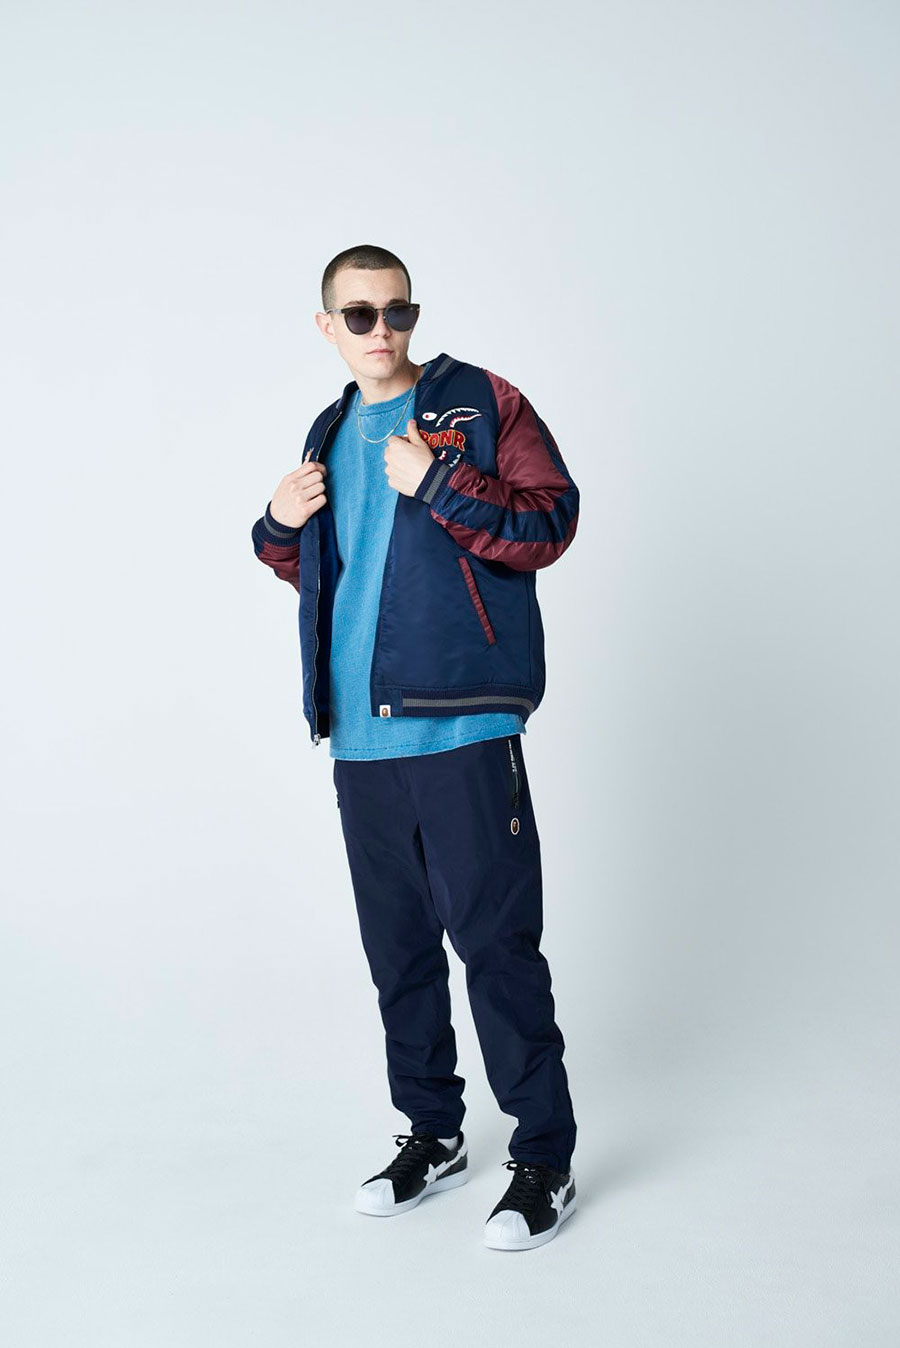 潮牌 A BATHING APE® 发布 2020 最新秋冬男装搭配造型 Lookbook插图(3)